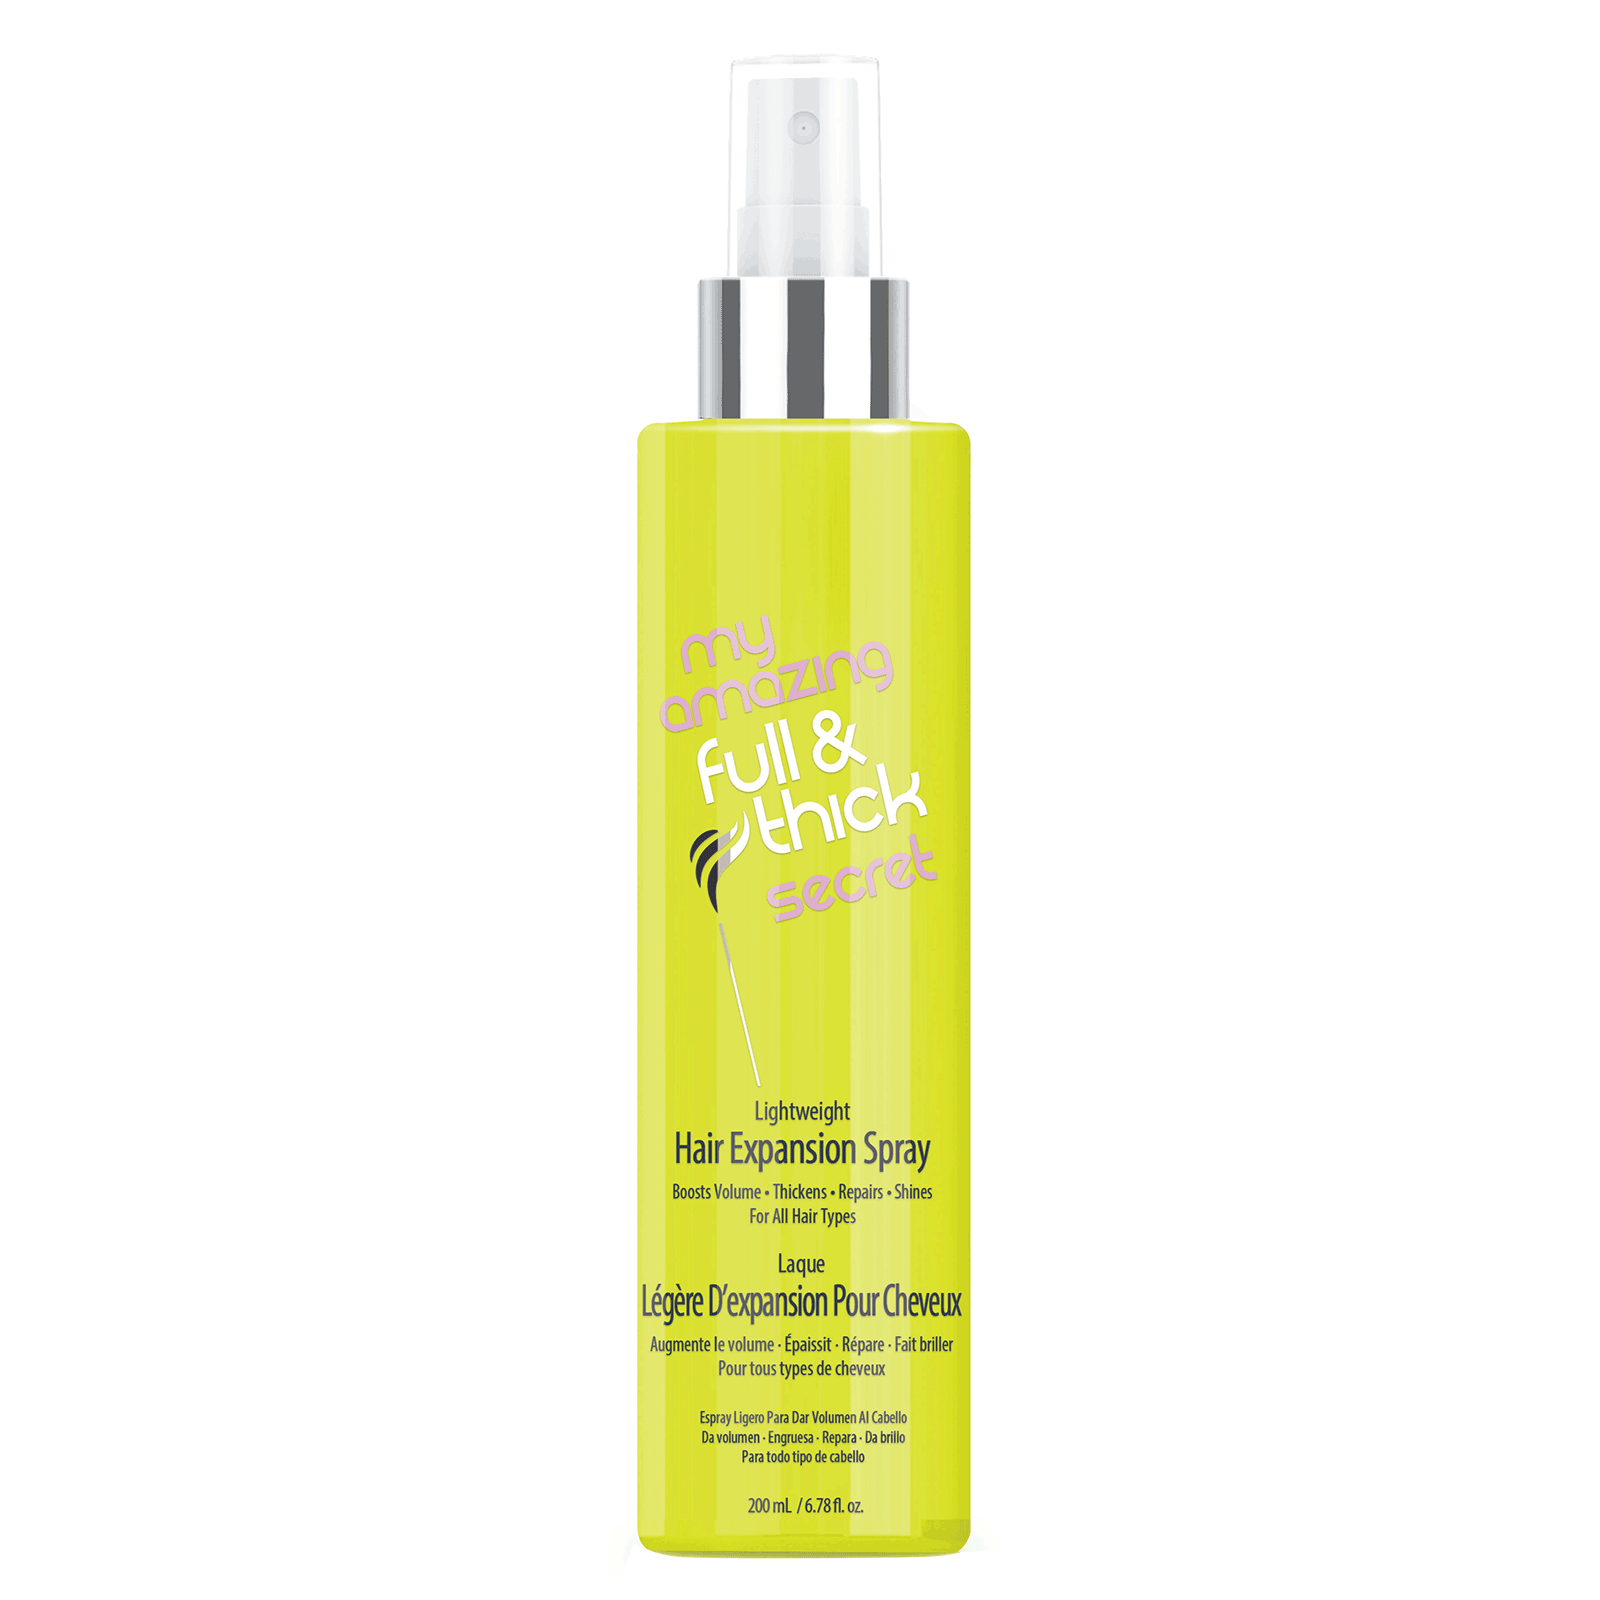 Full and Thick Secret Hair Expansion Spray